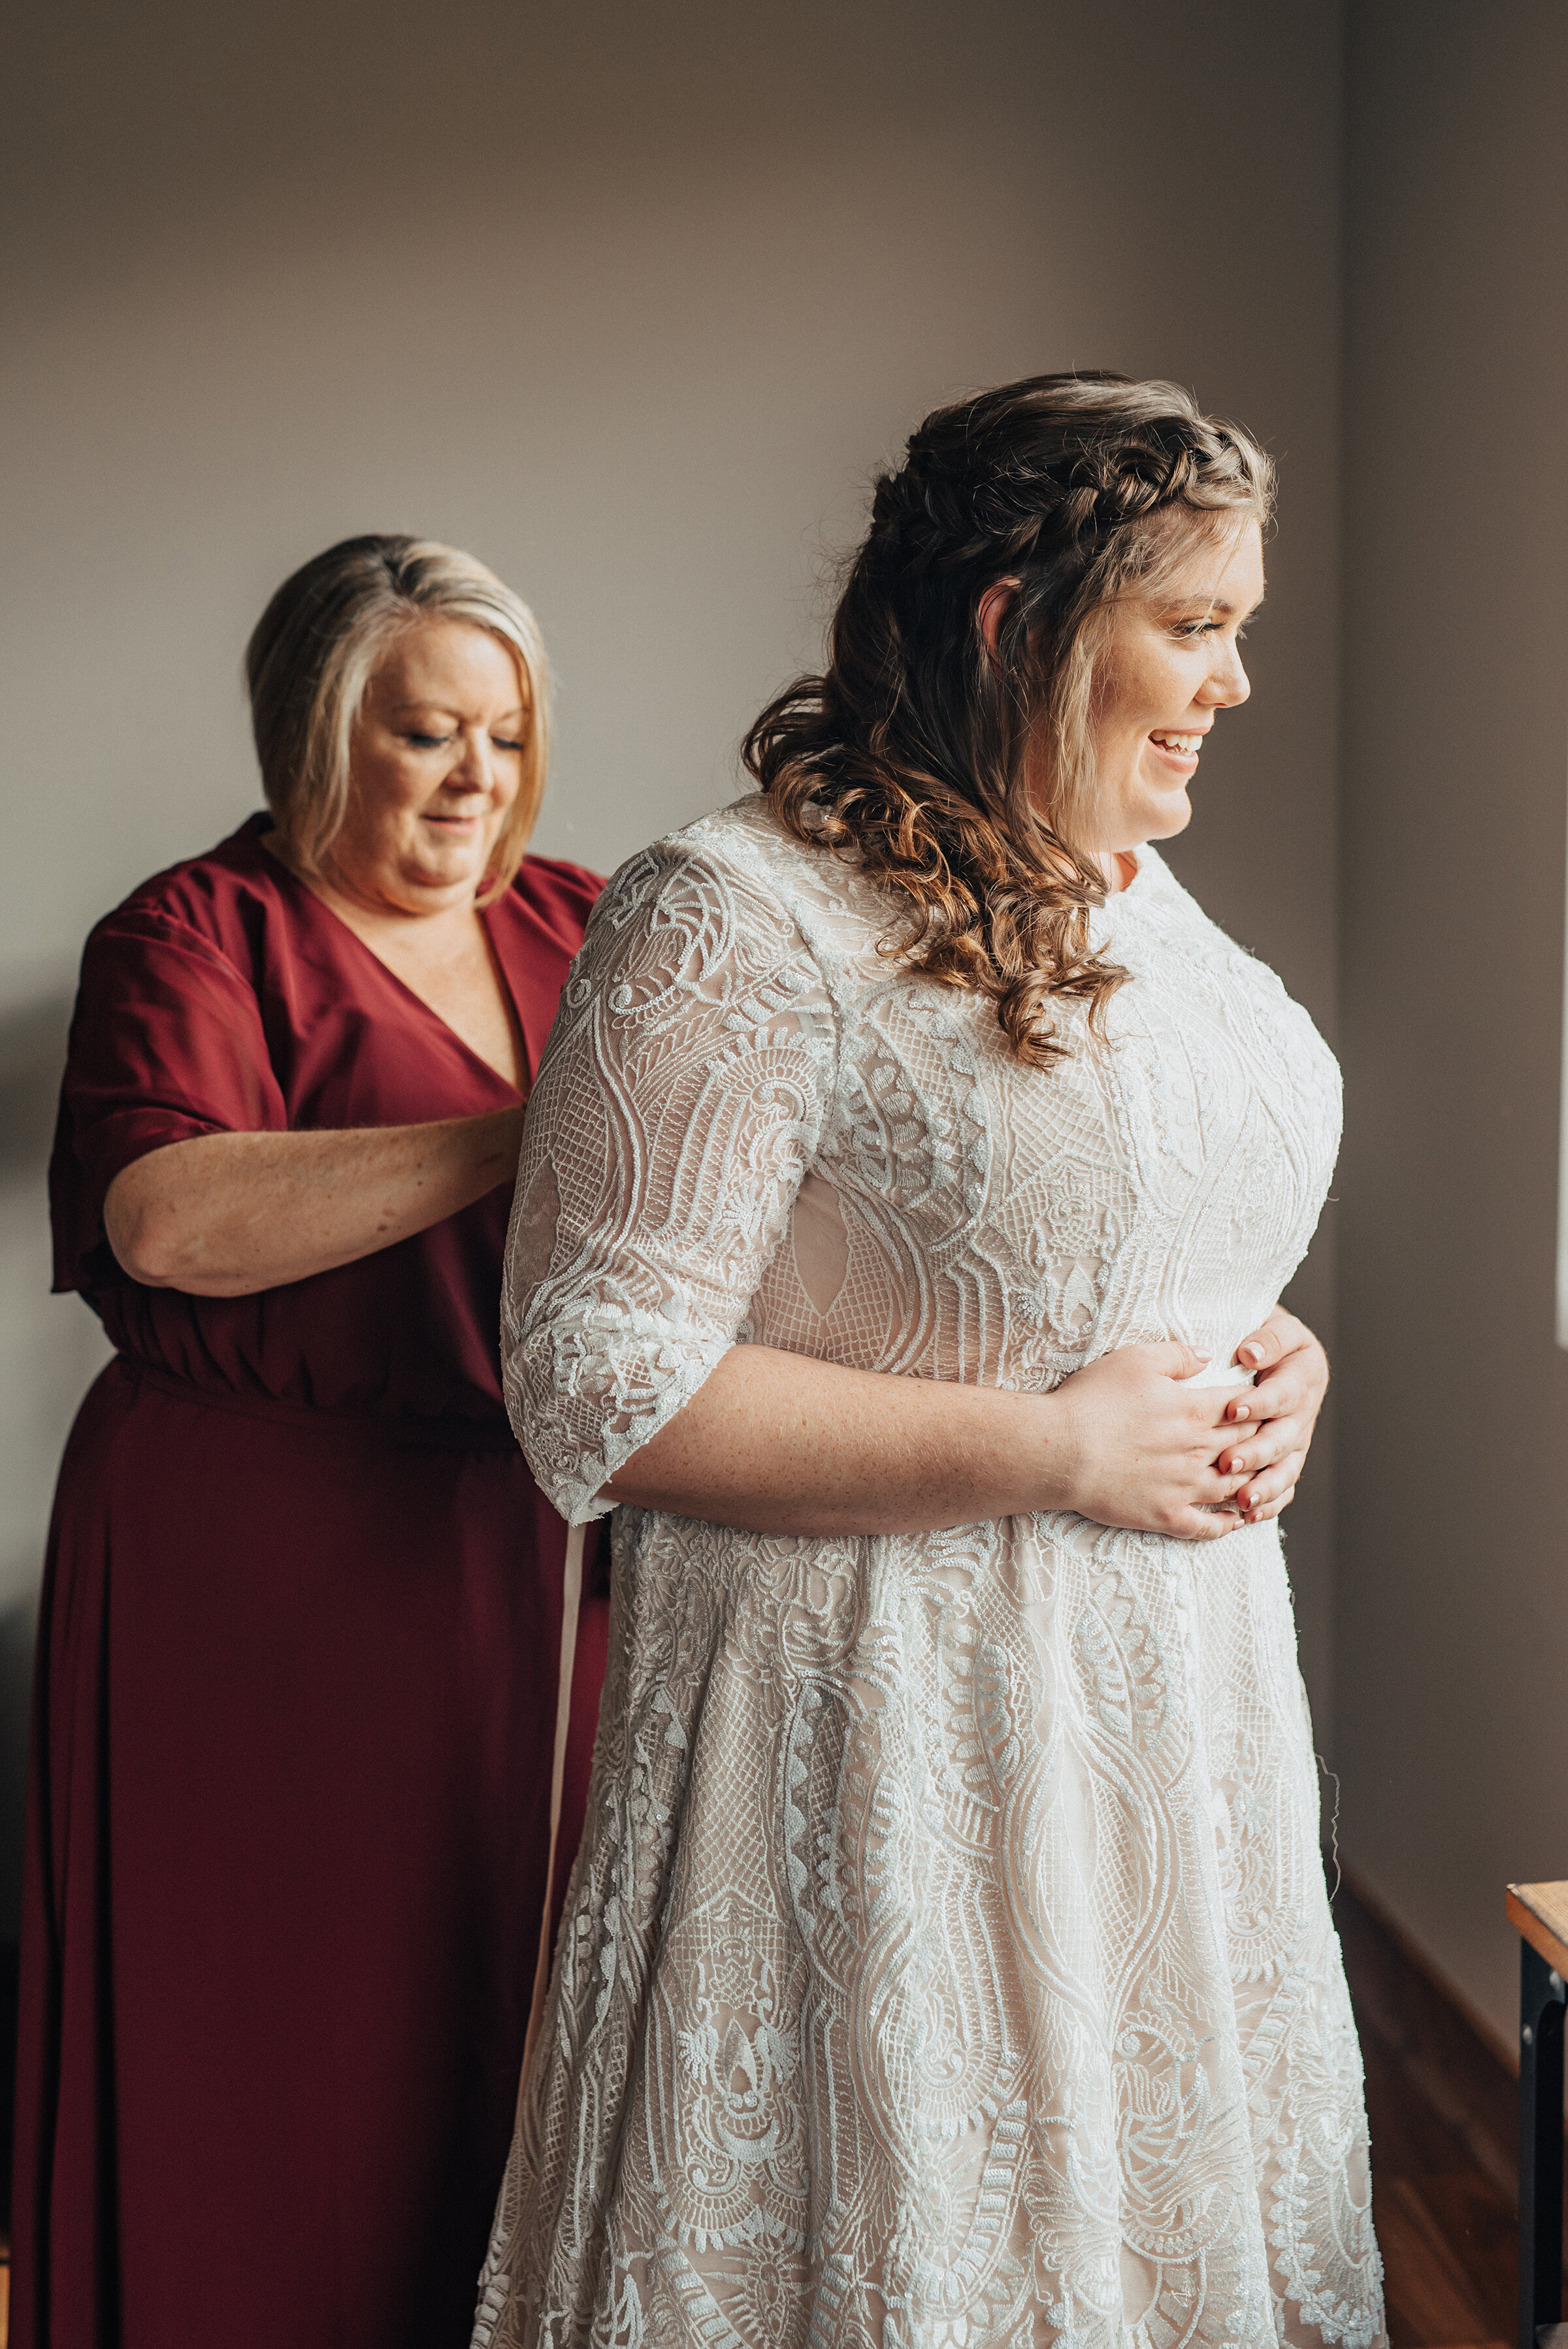 A sweet moment shared by mother and bride on the wedding day in Logan Utah by Kristi Alyse Photography. Mother daughter meaningful moment brides white wedding dress mother of the bride dress inspo braided bride hairstyle wedding day Kristi Alyse wedding photographer norther Utah wedding logan Utah bride #weddinginspo #loganutah #brideandgroom #utahbride #utahweddingphotographer #meaningfulmoment #weddingphotography #northernutahwedding #weddinghairstyles #weddingday #bridals